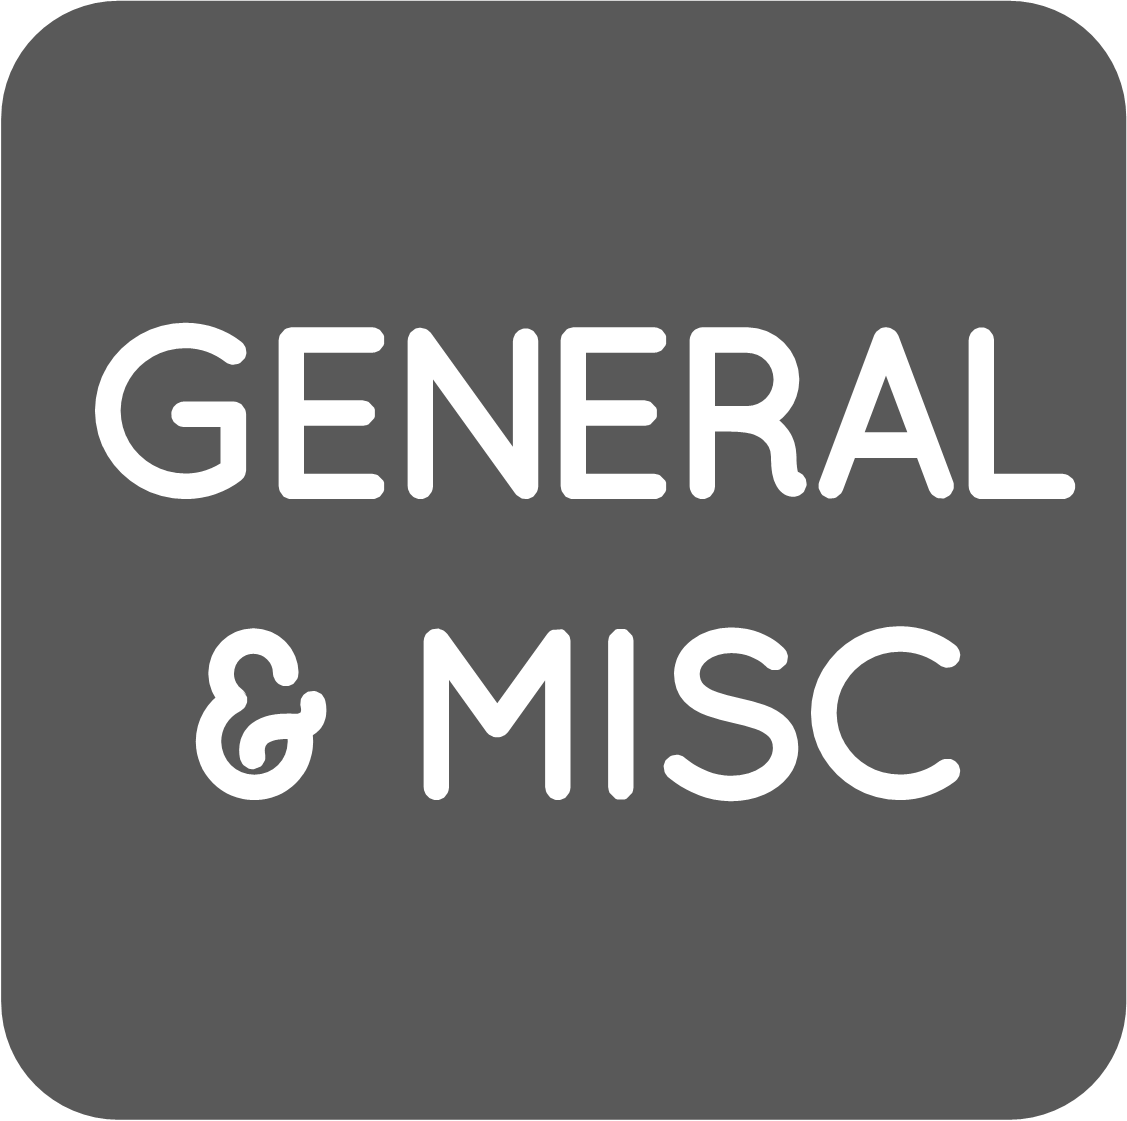 00-GENERAL AND MISC.png